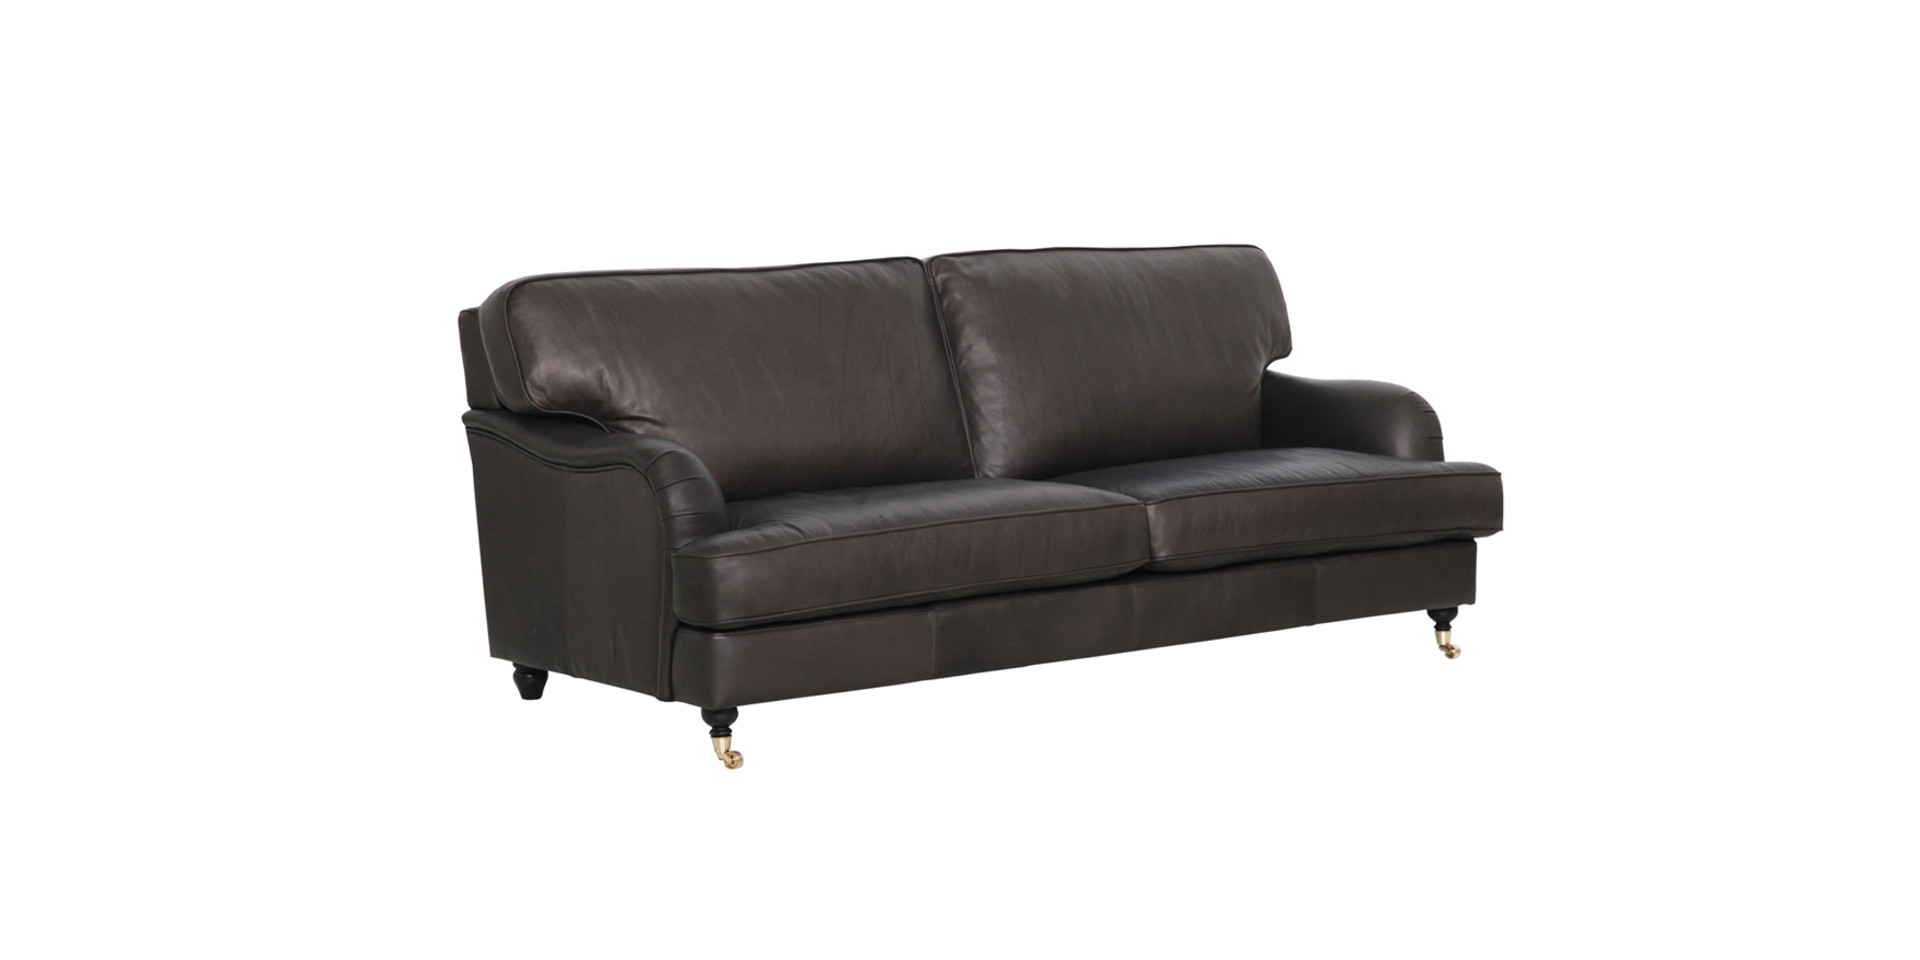 sits-howard-canape-3seater_aniline_dark_brown_2